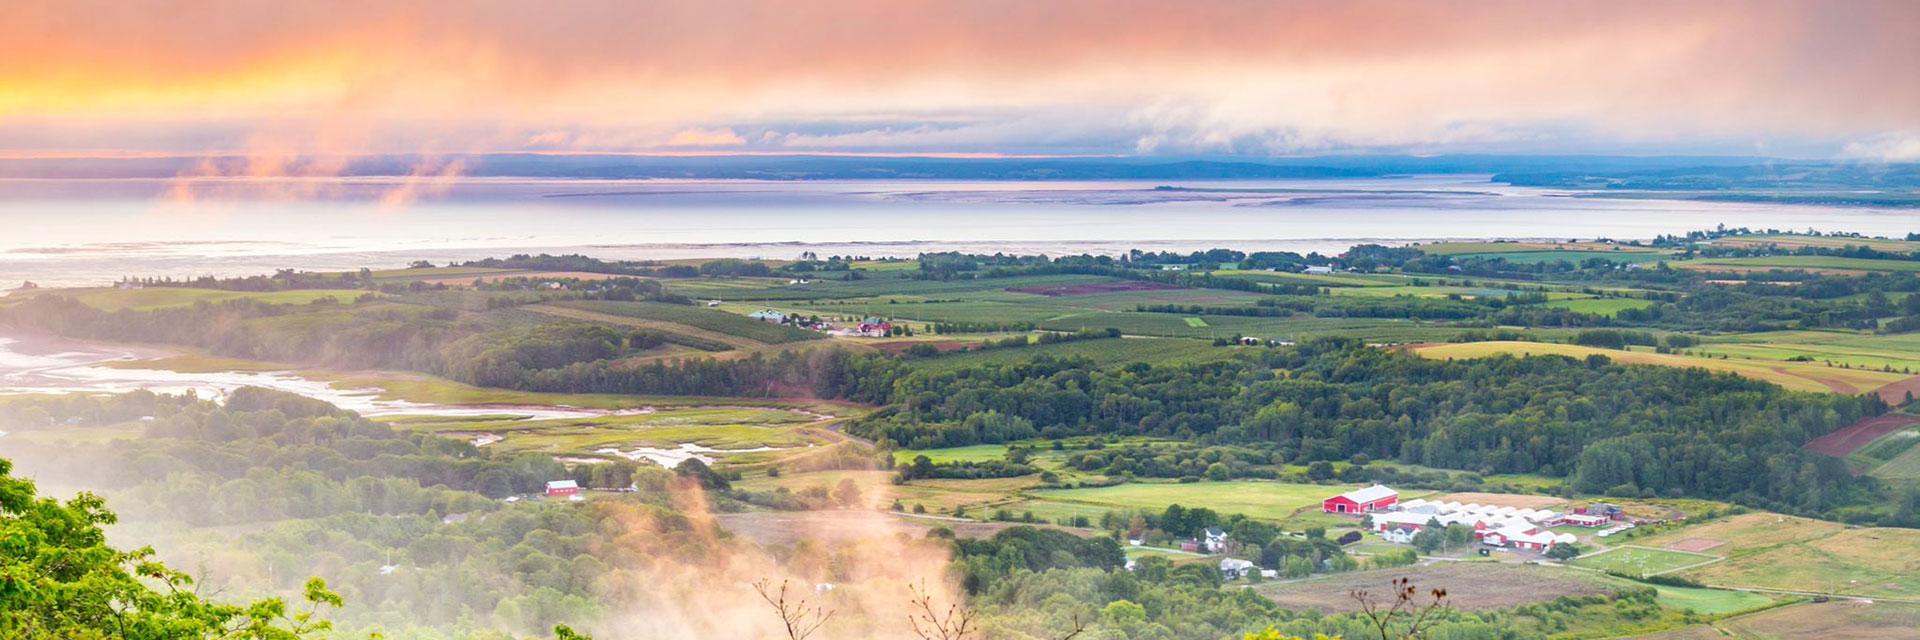 A scene overlooking rural Nova Scotia farmland and water with the sun and some clouds in the sky,